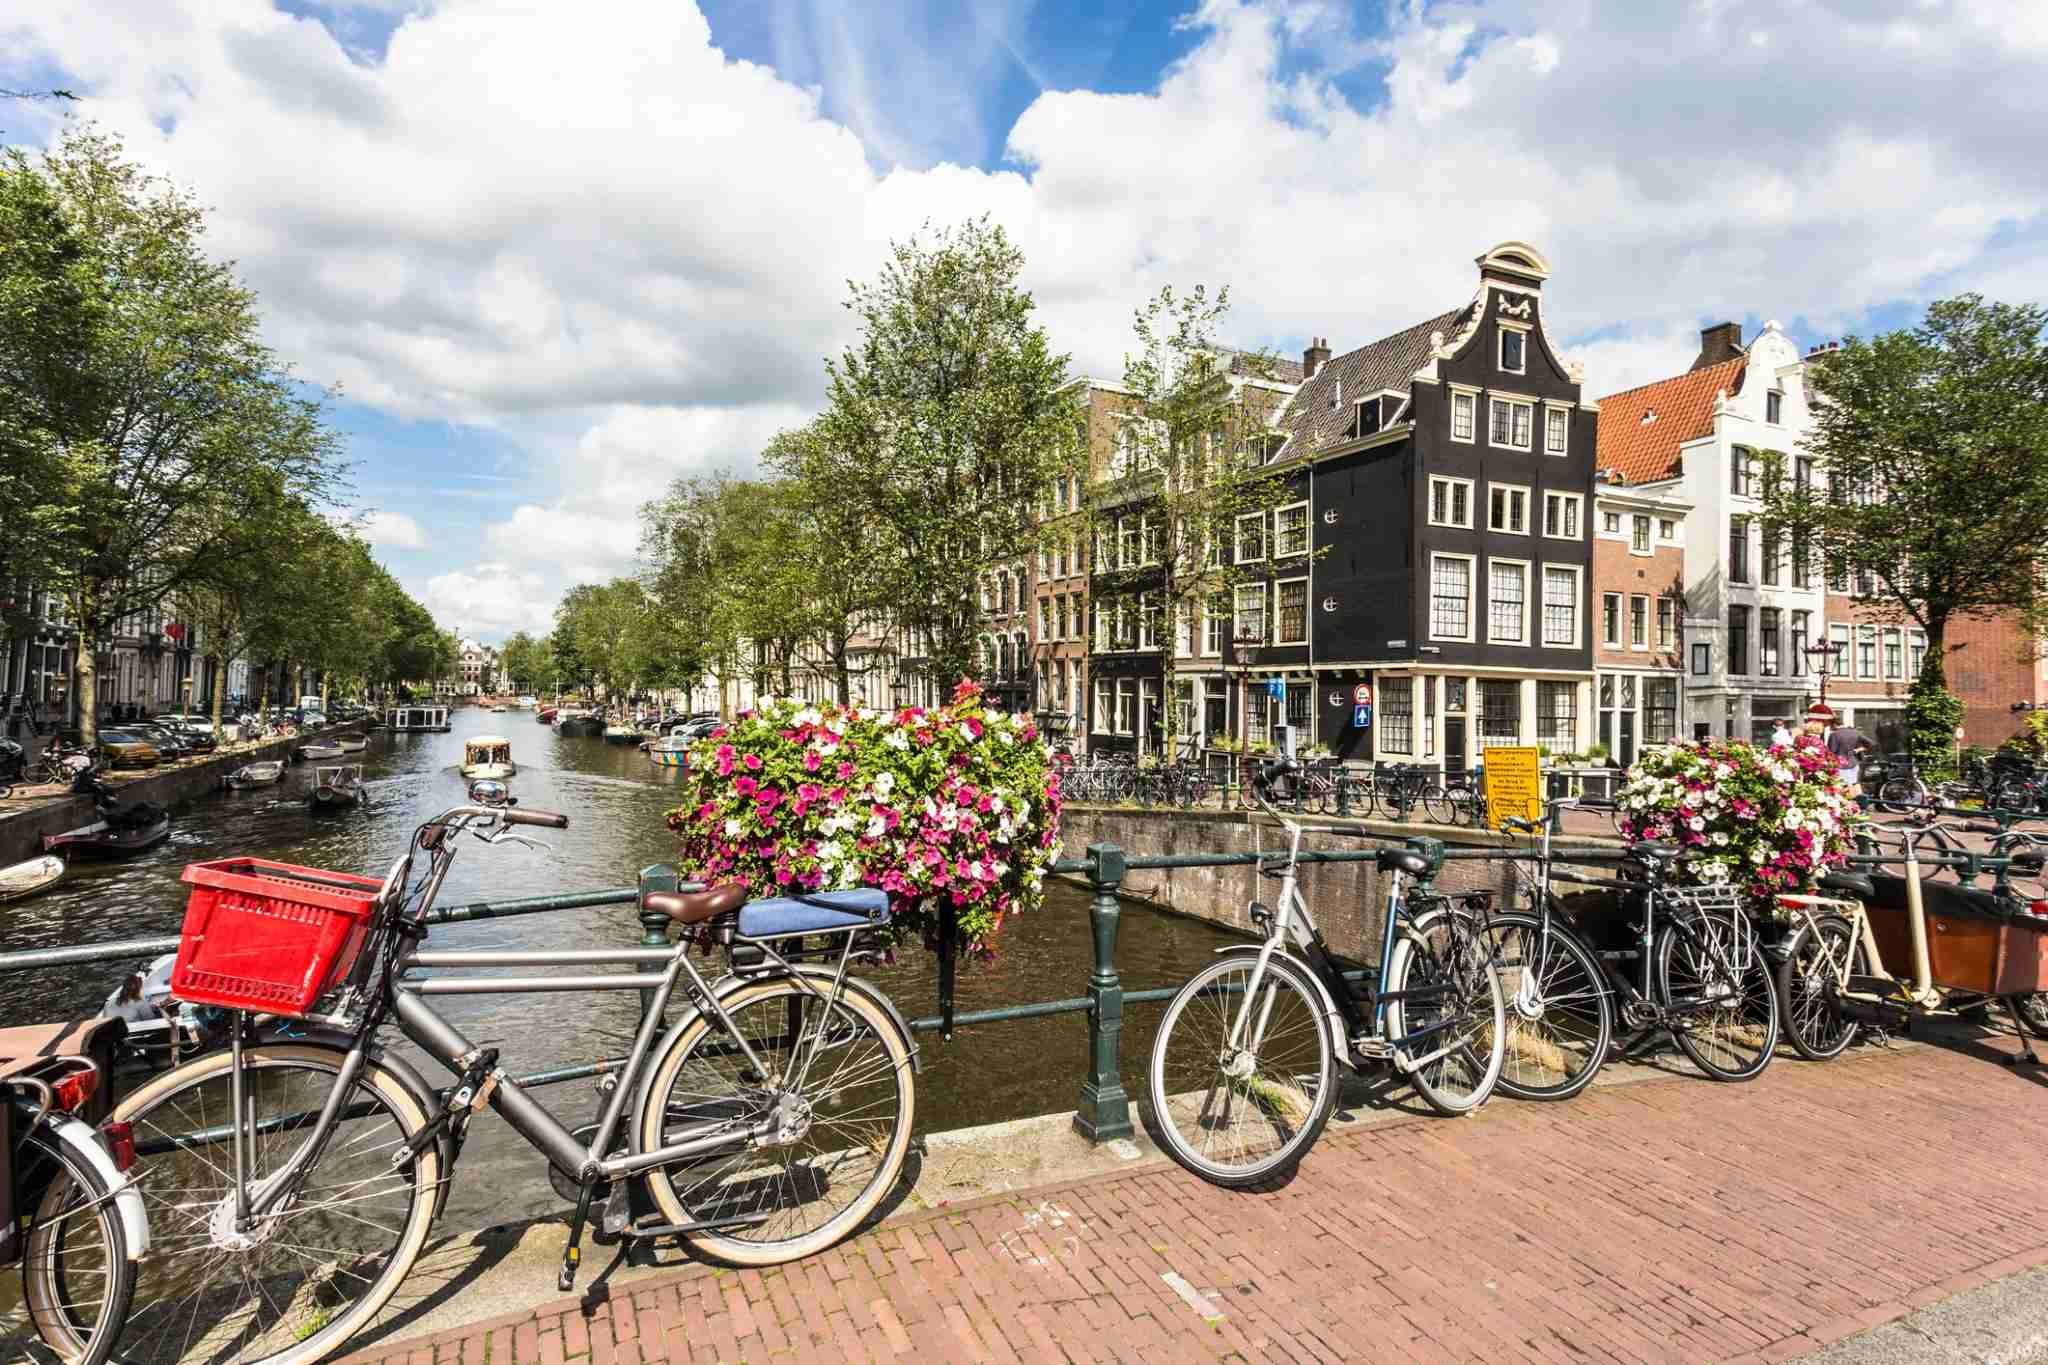 Bicycle rides along the canals of Amsterdam are simply magical. (Photo by @ Didier Marti / Getty Images)